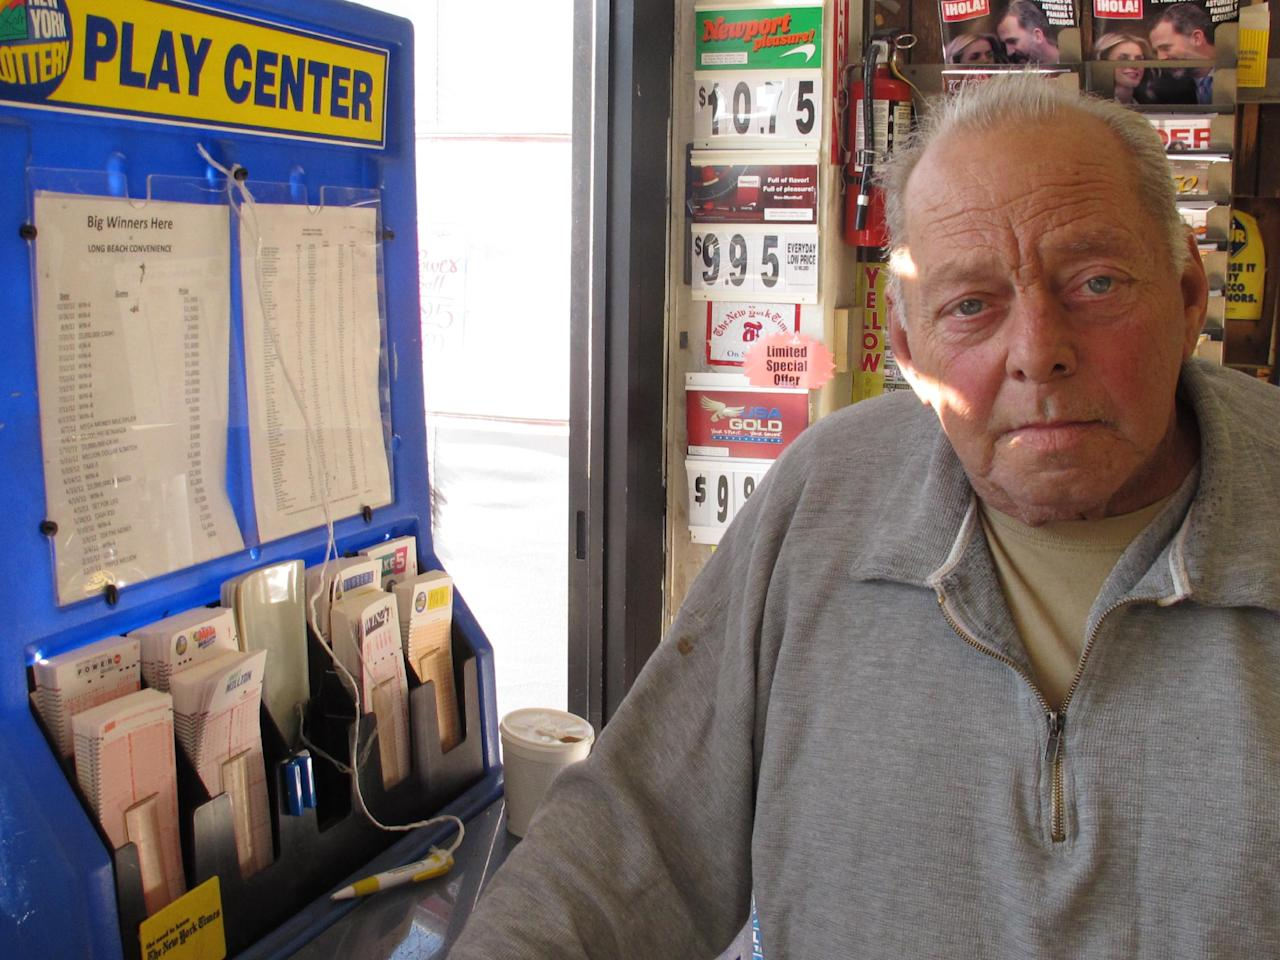 Raymond Parker mulls what he might do with the winning Powerball jackpot inside a stationery store in Long Beach, N.Y. on Monday, Nov. 26, 2012. The 67-year-old Long Beach resident, who's car was destroyed in Superstorm Sandy, said he is rooting for multiple winners of the $425 million jackpot. (AP Photo/Frank Eltman)